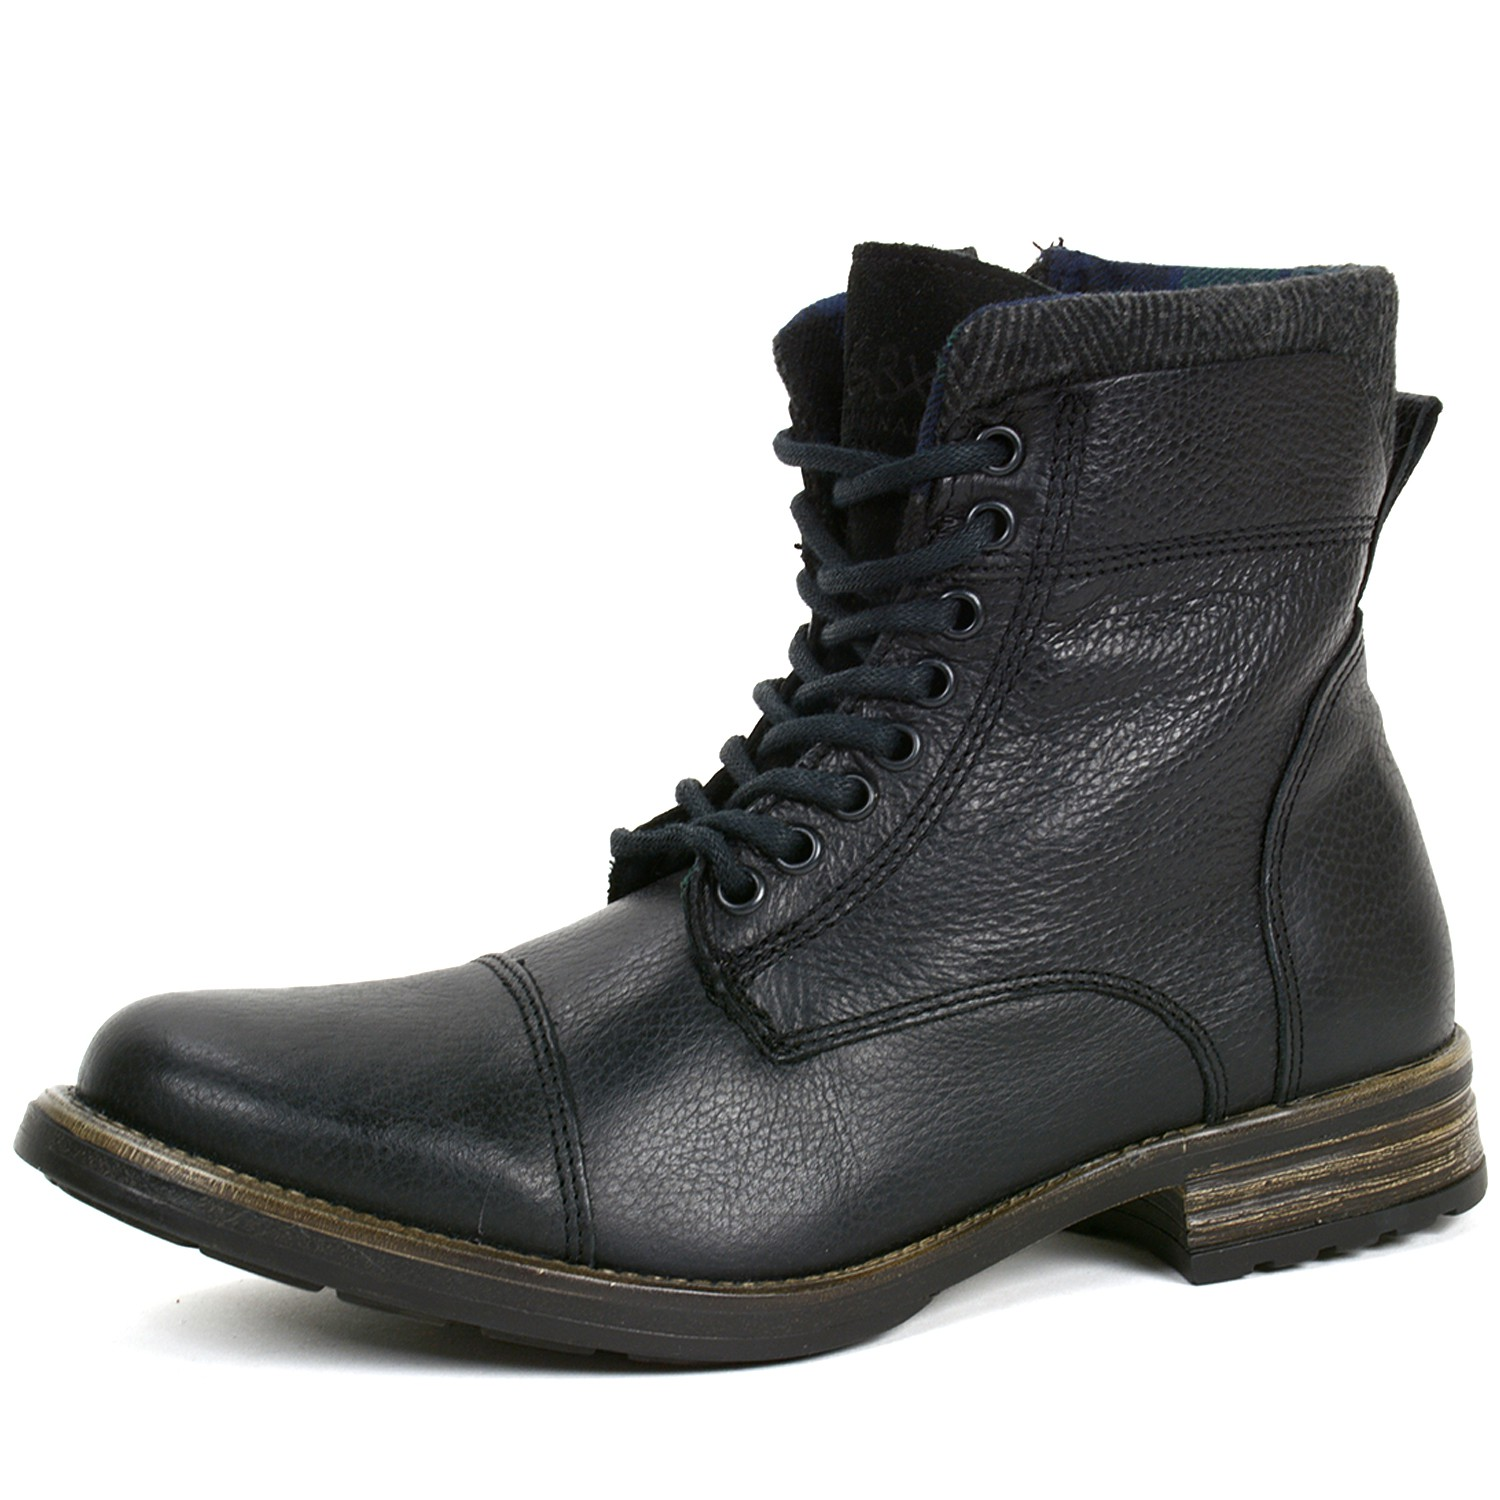 gbx mens tosh ankle high boots lace up combat style casual